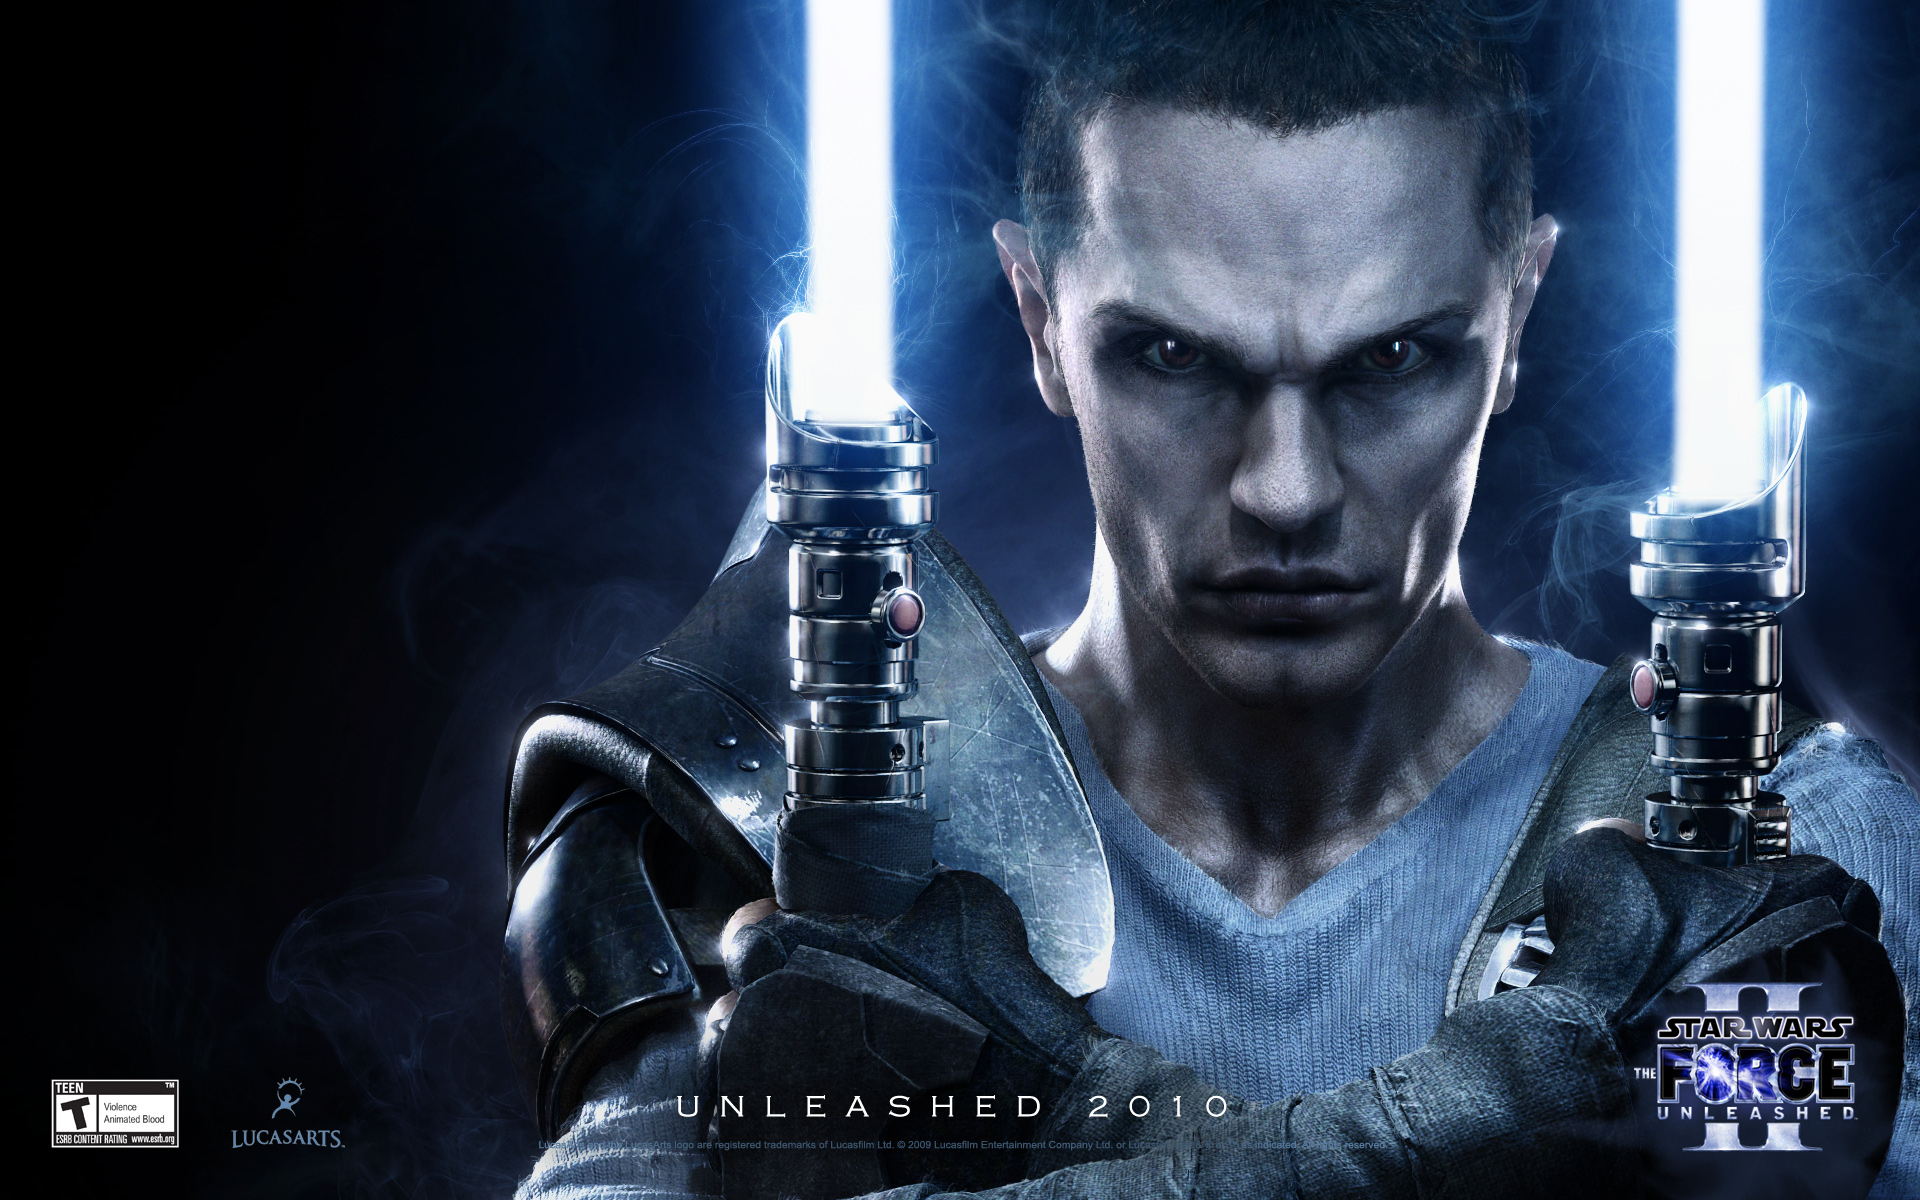 star-wars-the-force-unleashed-2-wallpaper-close-up-1920x1200.jpg